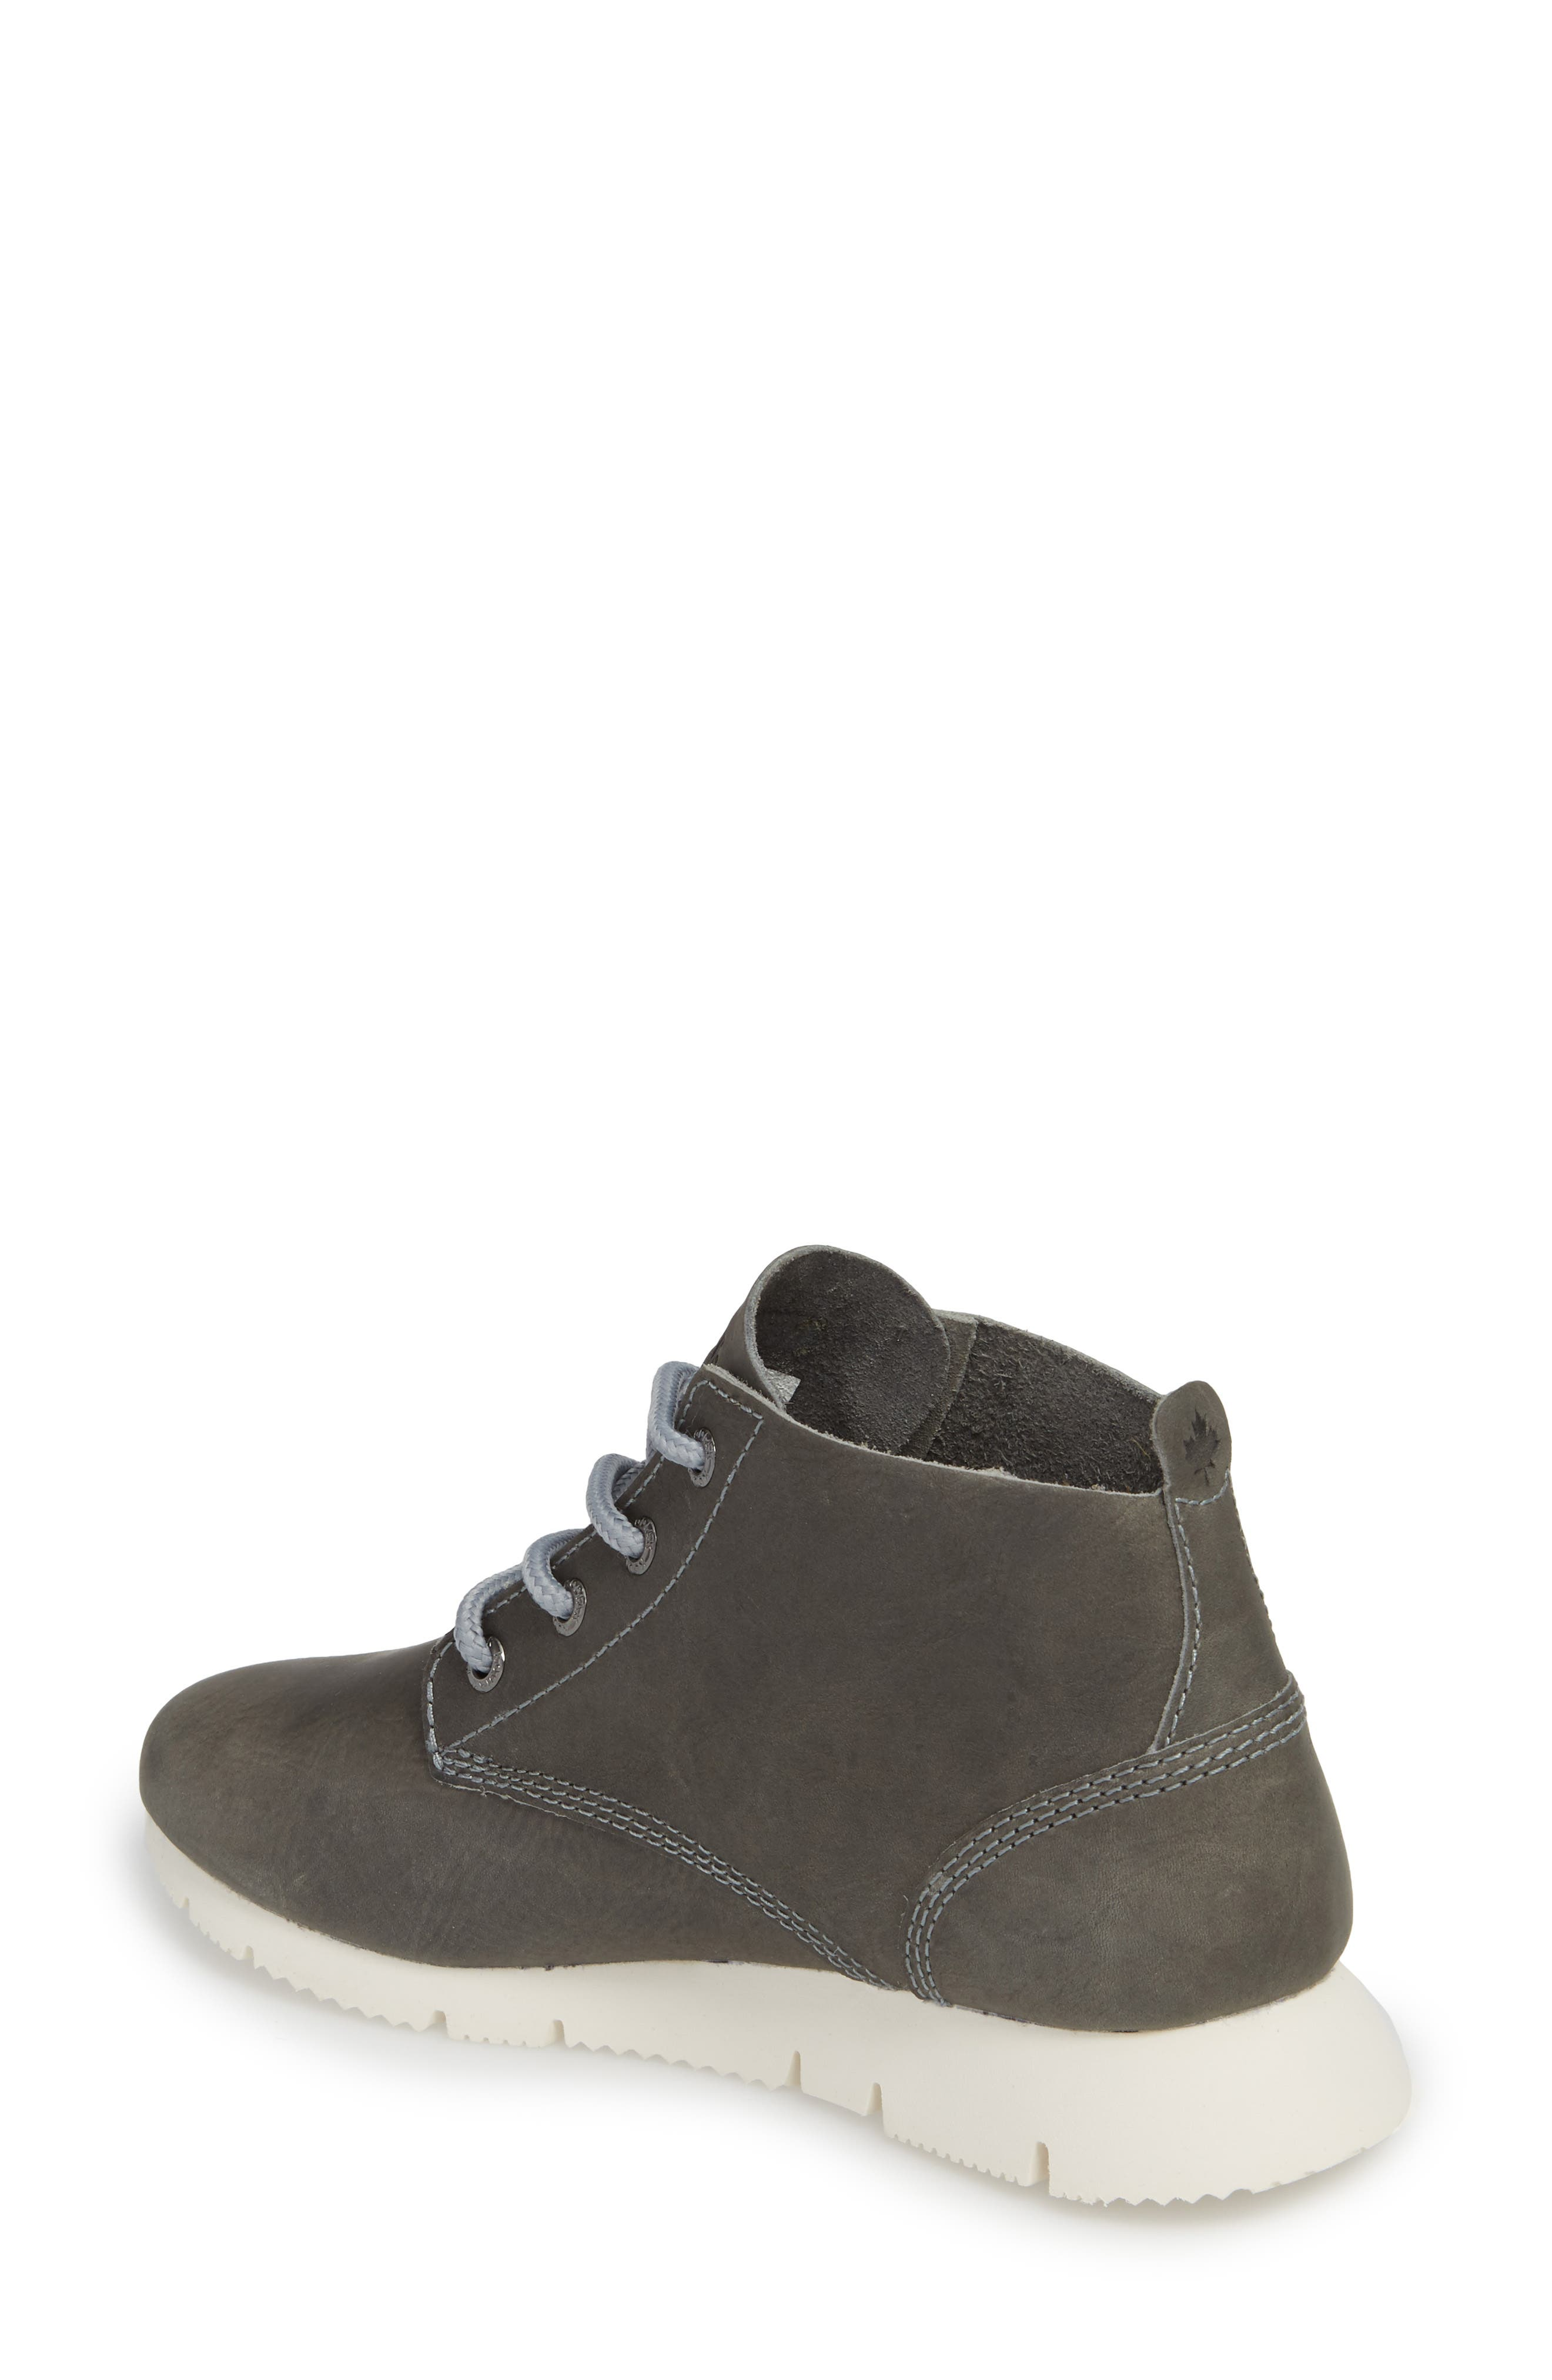 Chukka Boot,                             Alternate thumbnail 2, color,                             GREY LEATHER